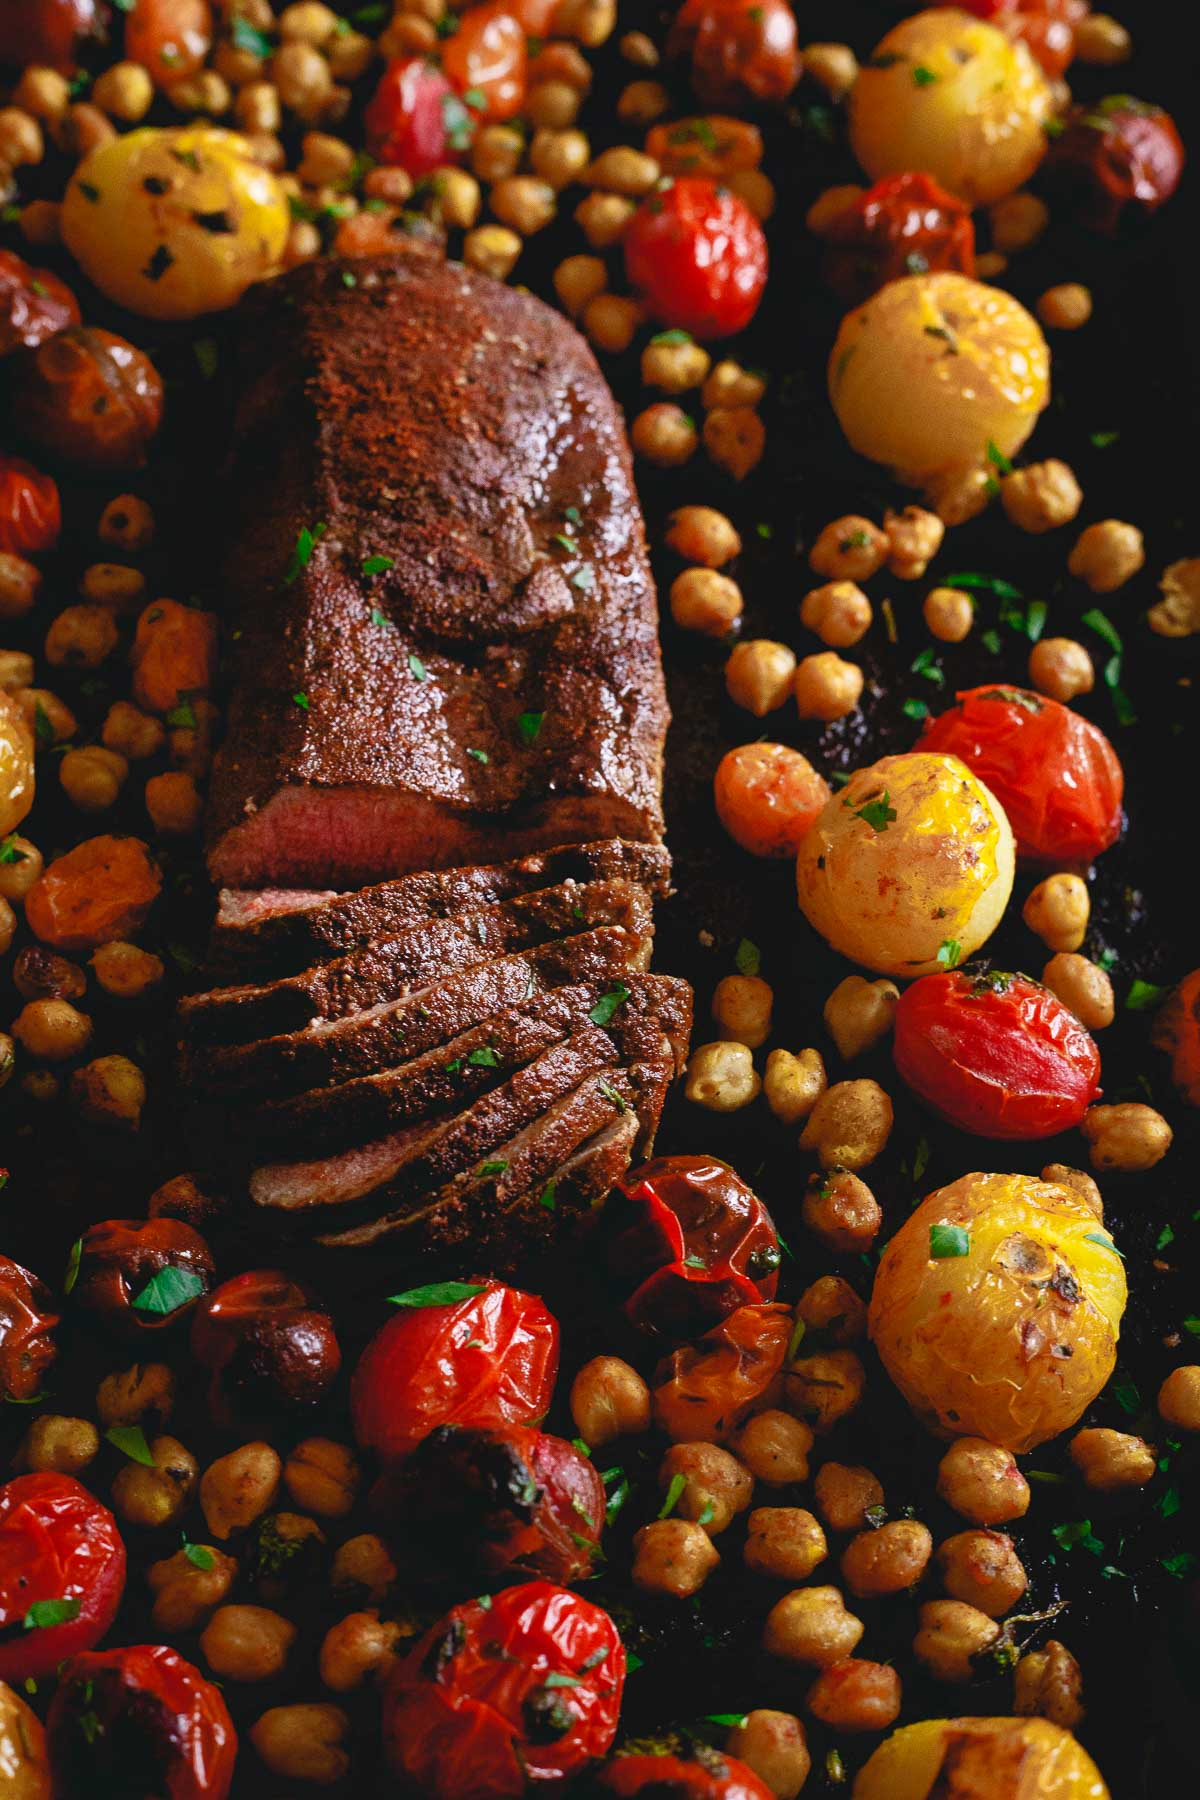 Get dinner on the table fast with this one pan roasted lamb dinner. Packed with flavorful spices, roasted tomatoes and chickpeas.